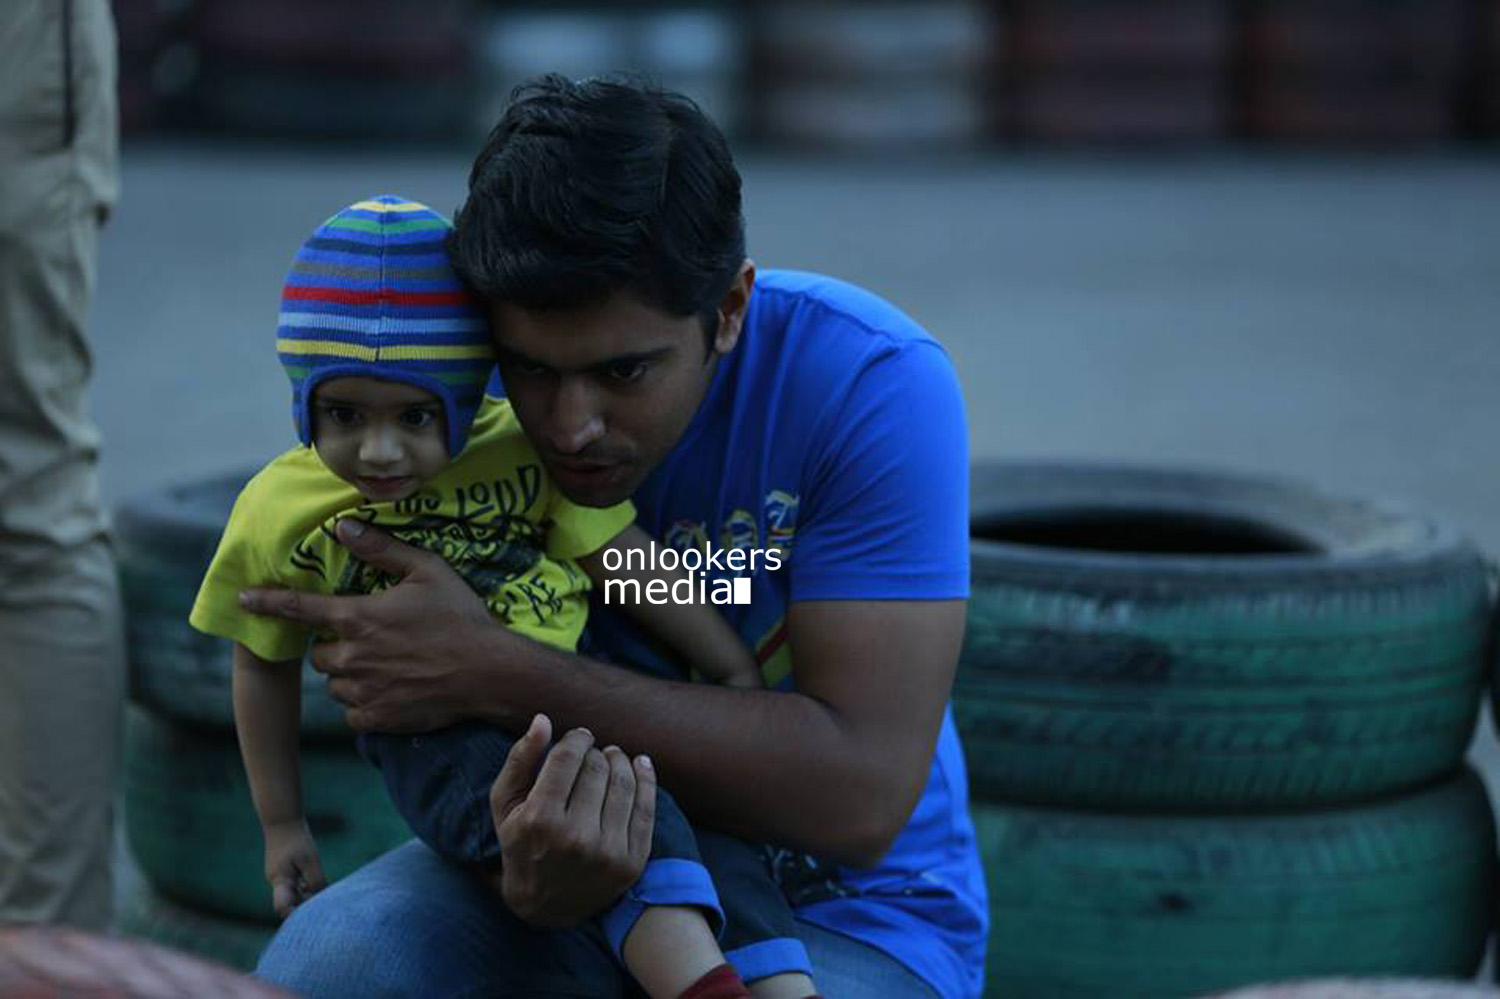 http://onlookersmedia.in/wp-content/uploads/2015/04/Nivin-Pauly-Stills-Images-Photos-Malayalam-Movie-2015-Onlookers-Media-26.jpg